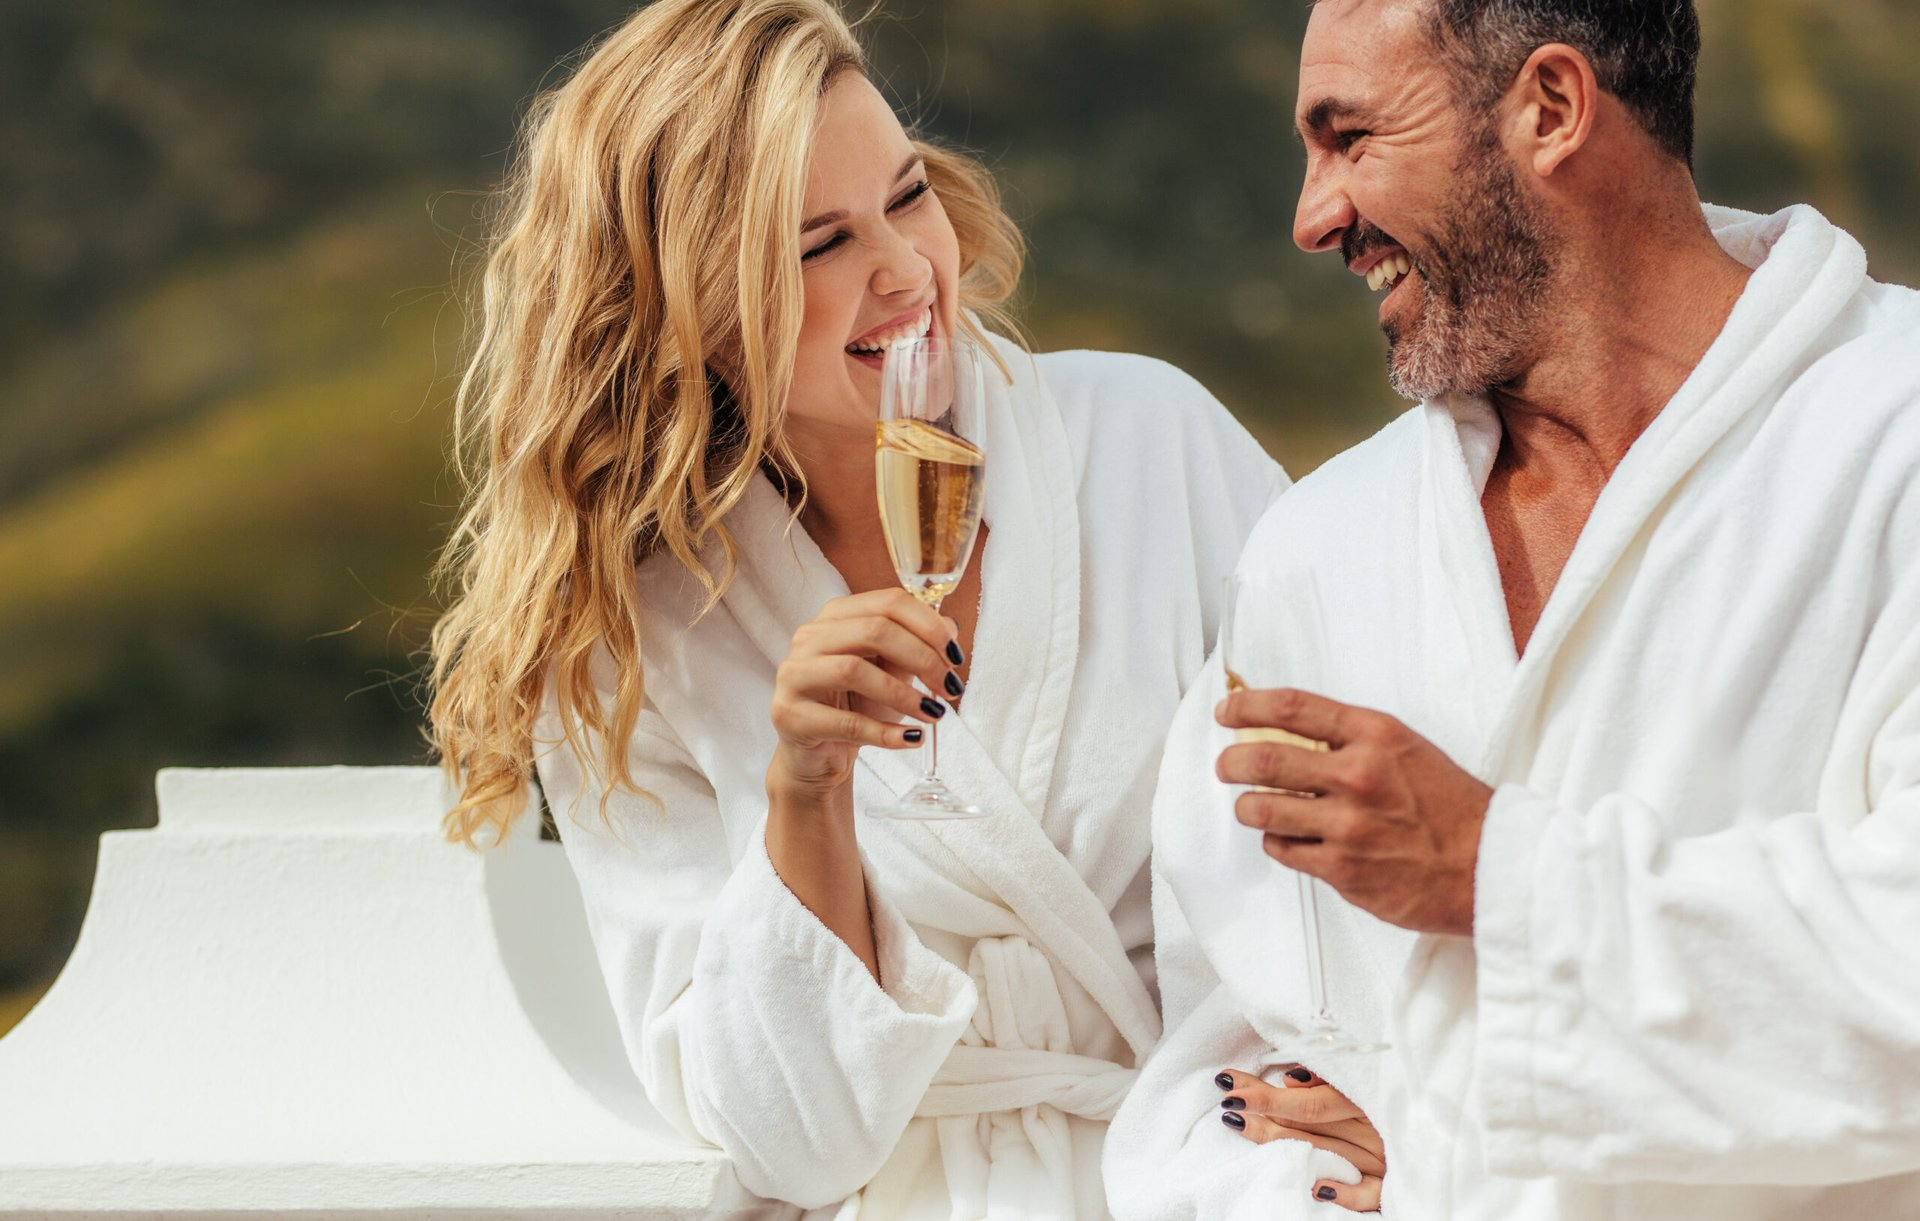 Couple drinking champagne in bathrobes